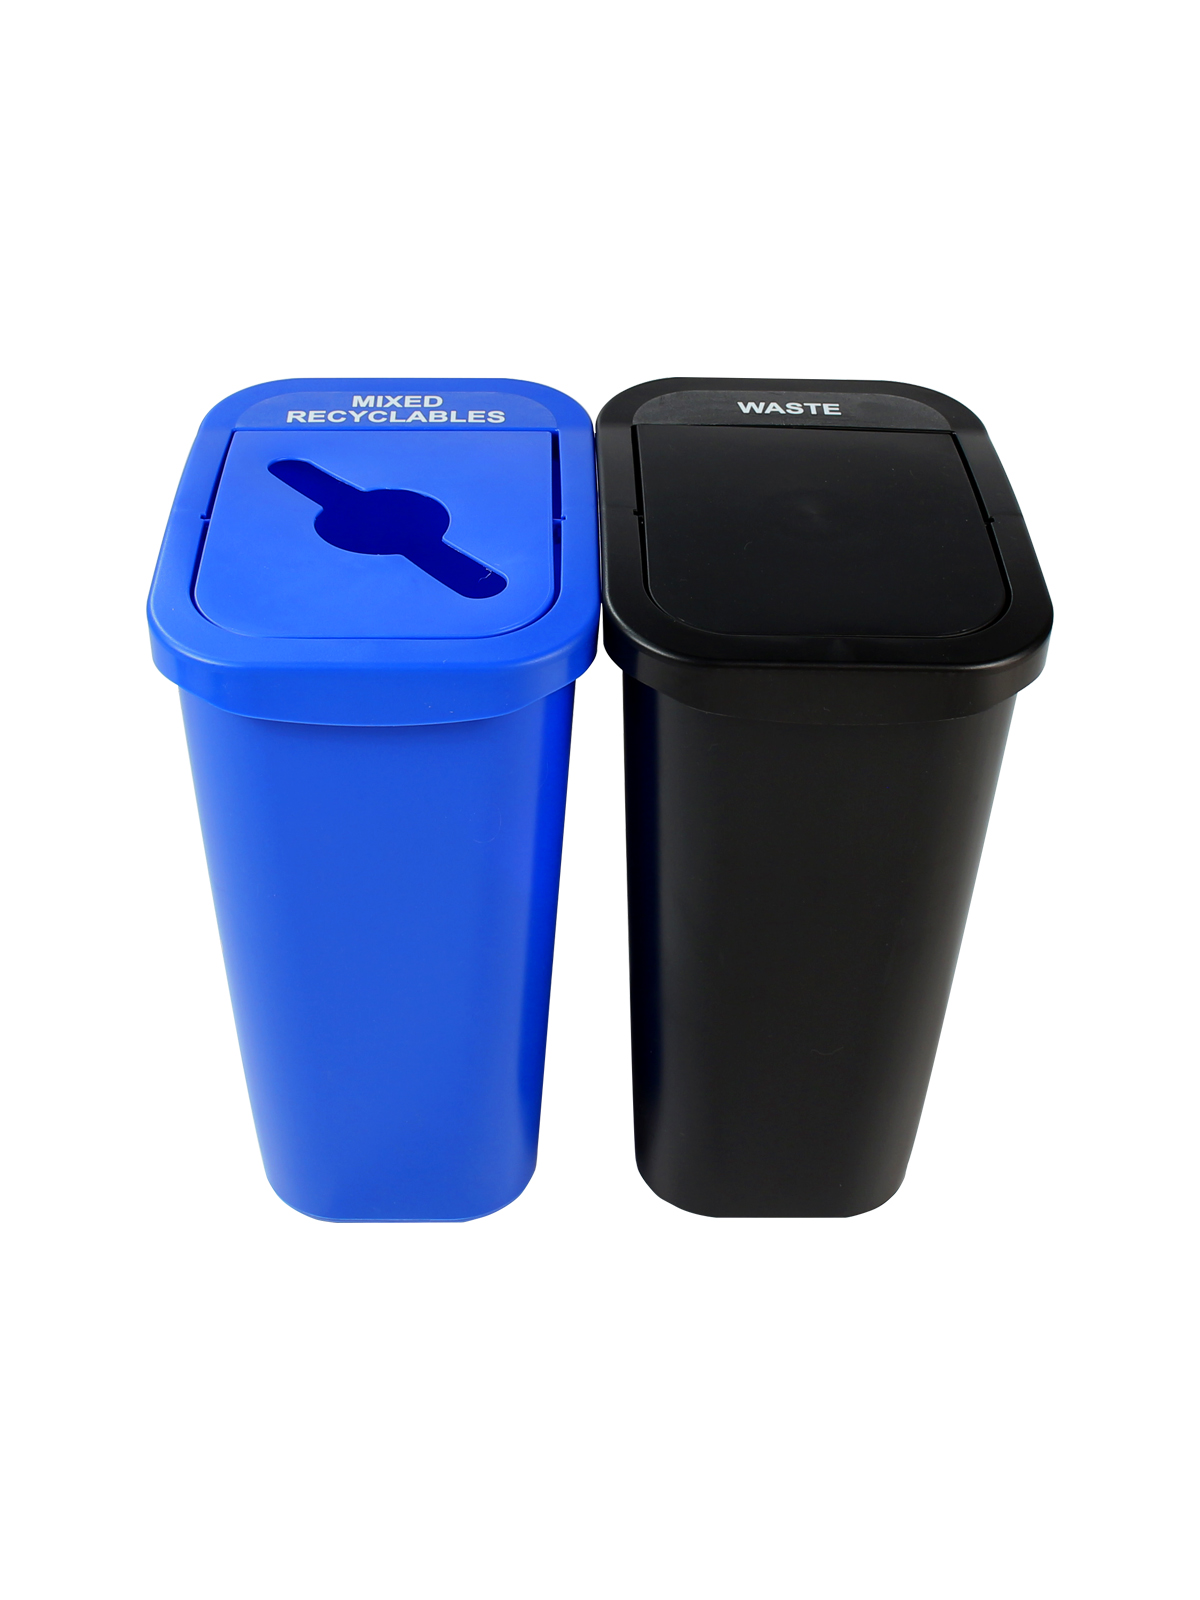 BILLI BOX - DOUBLE 10 G - MIXED | SWING - BLUE | BLACK - MIXED RECYCLABLES | WASTE title=